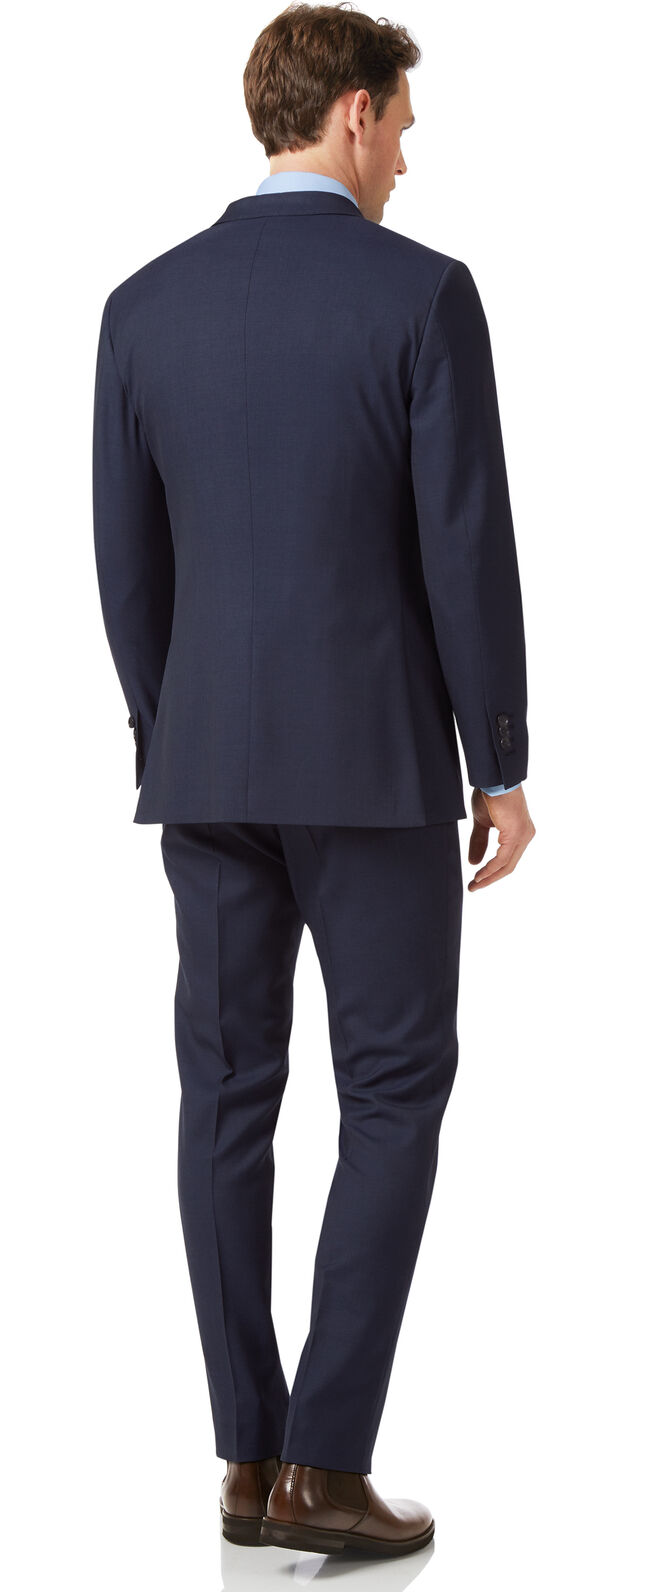 Navy slim fit sharkskin travel suit